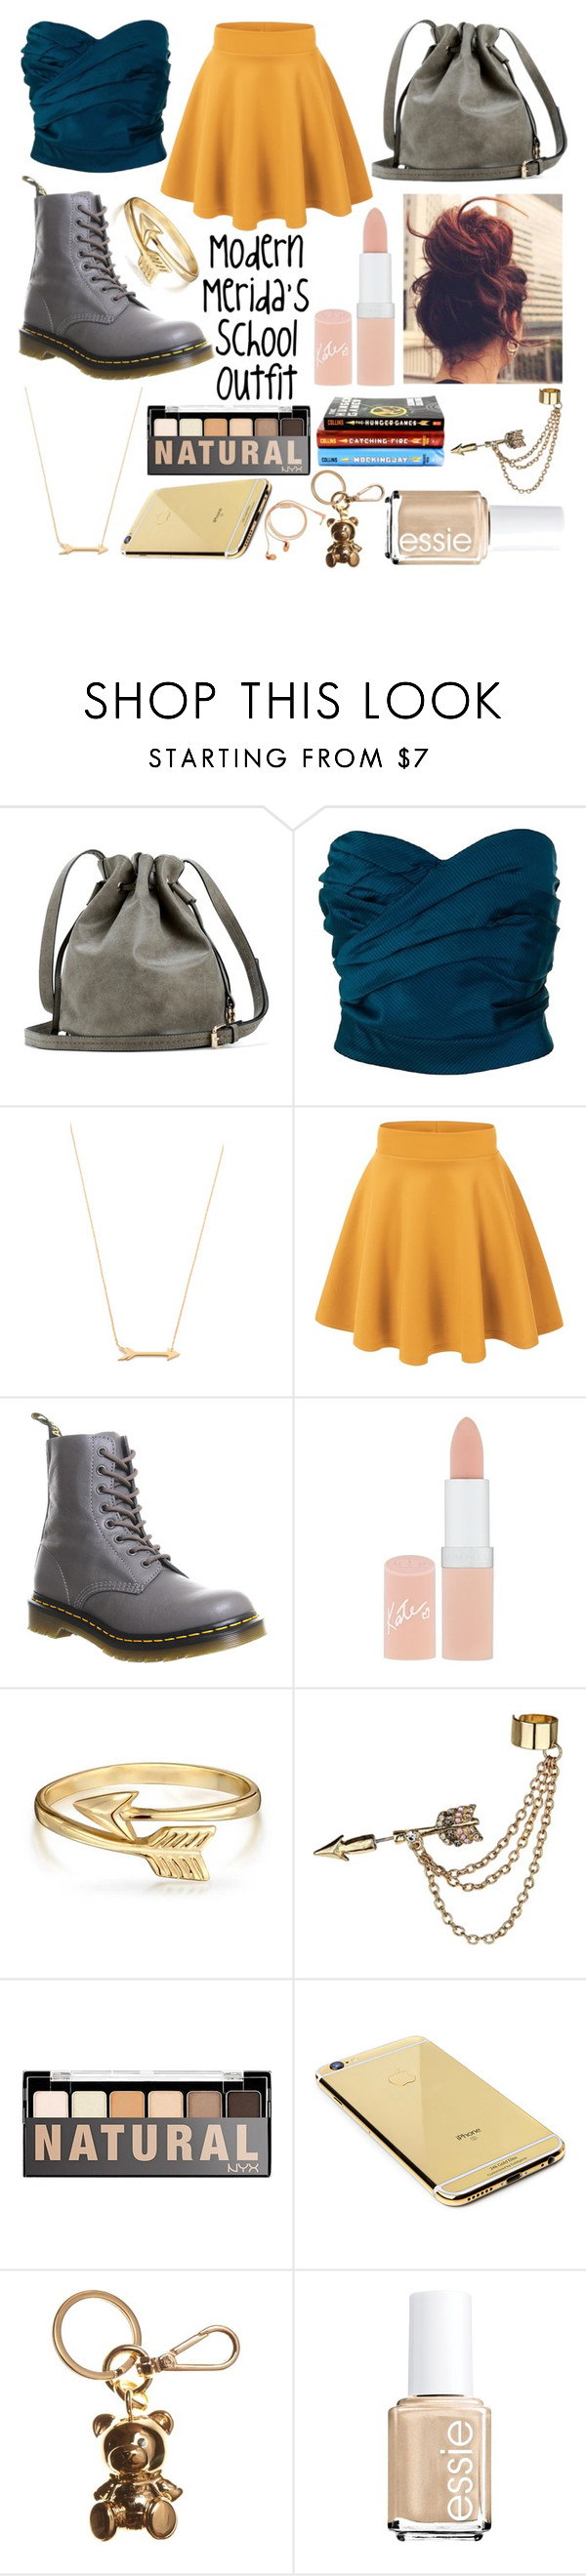 """Modern Merida's School Outfit"" by fangirl-0606 ❤ liked on Polyvore featuring Marc by Marc Jacobs, Jennifer Zeuner, Dr. Martens, Rimmel, Bling Jewelry, Emi Jewellery, Goldgenie, Moschino, Essie and Happy Plugs"